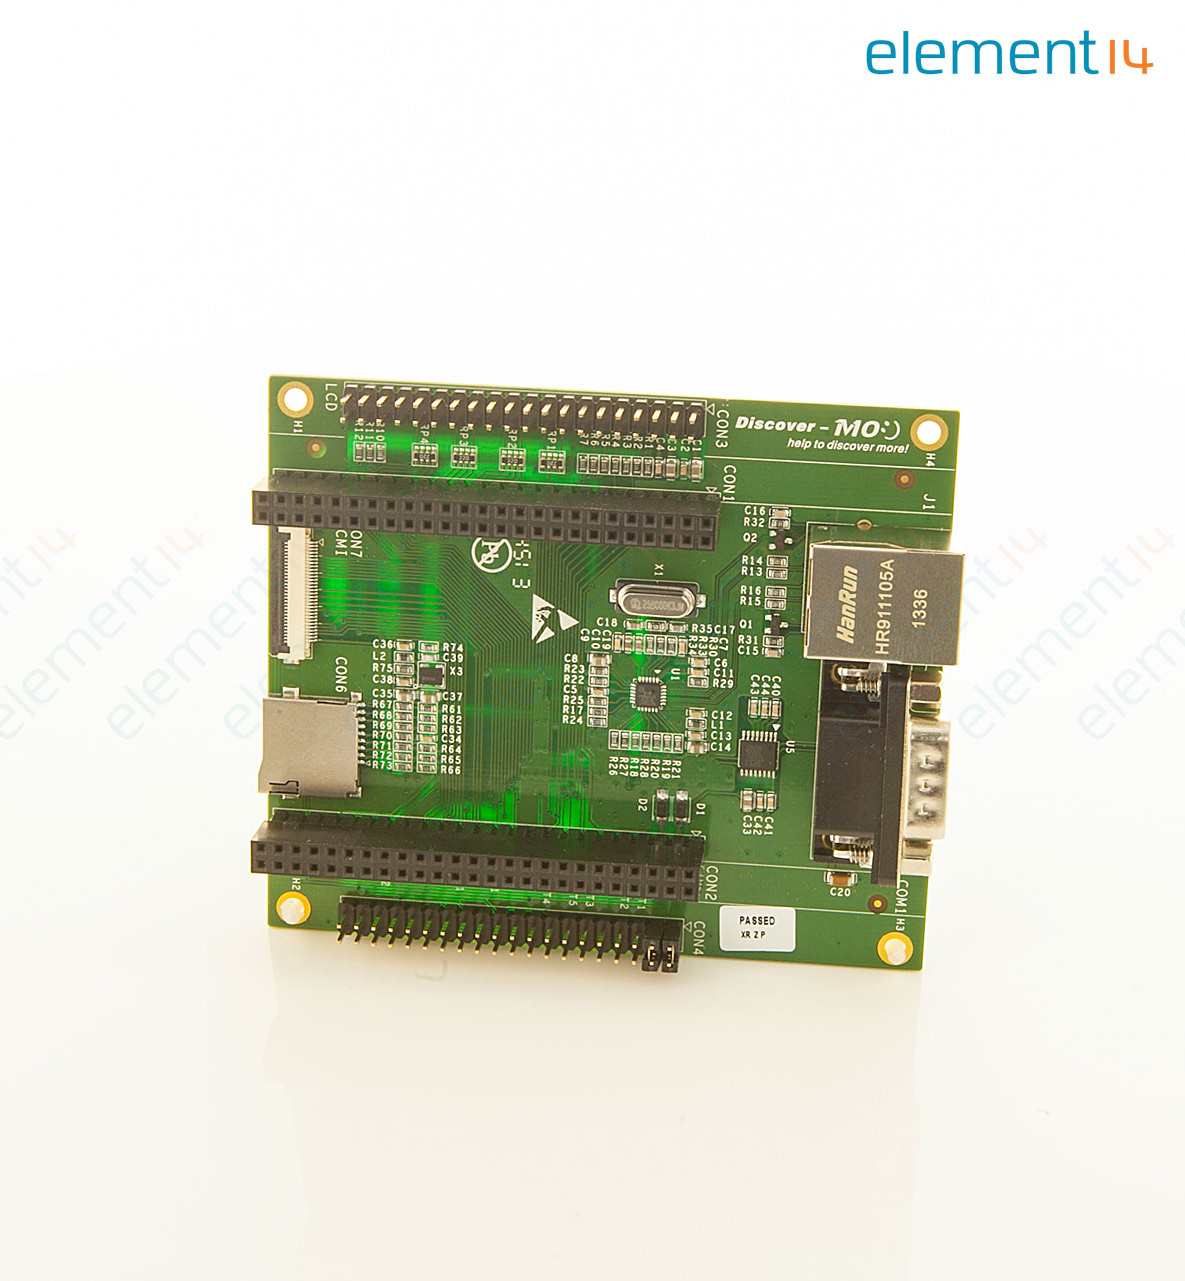 Expansion Board for STM32F4-DISCOVERY, Support for uC/OS-II_v2 86 OS, SPI,  I2C, CAN Interface